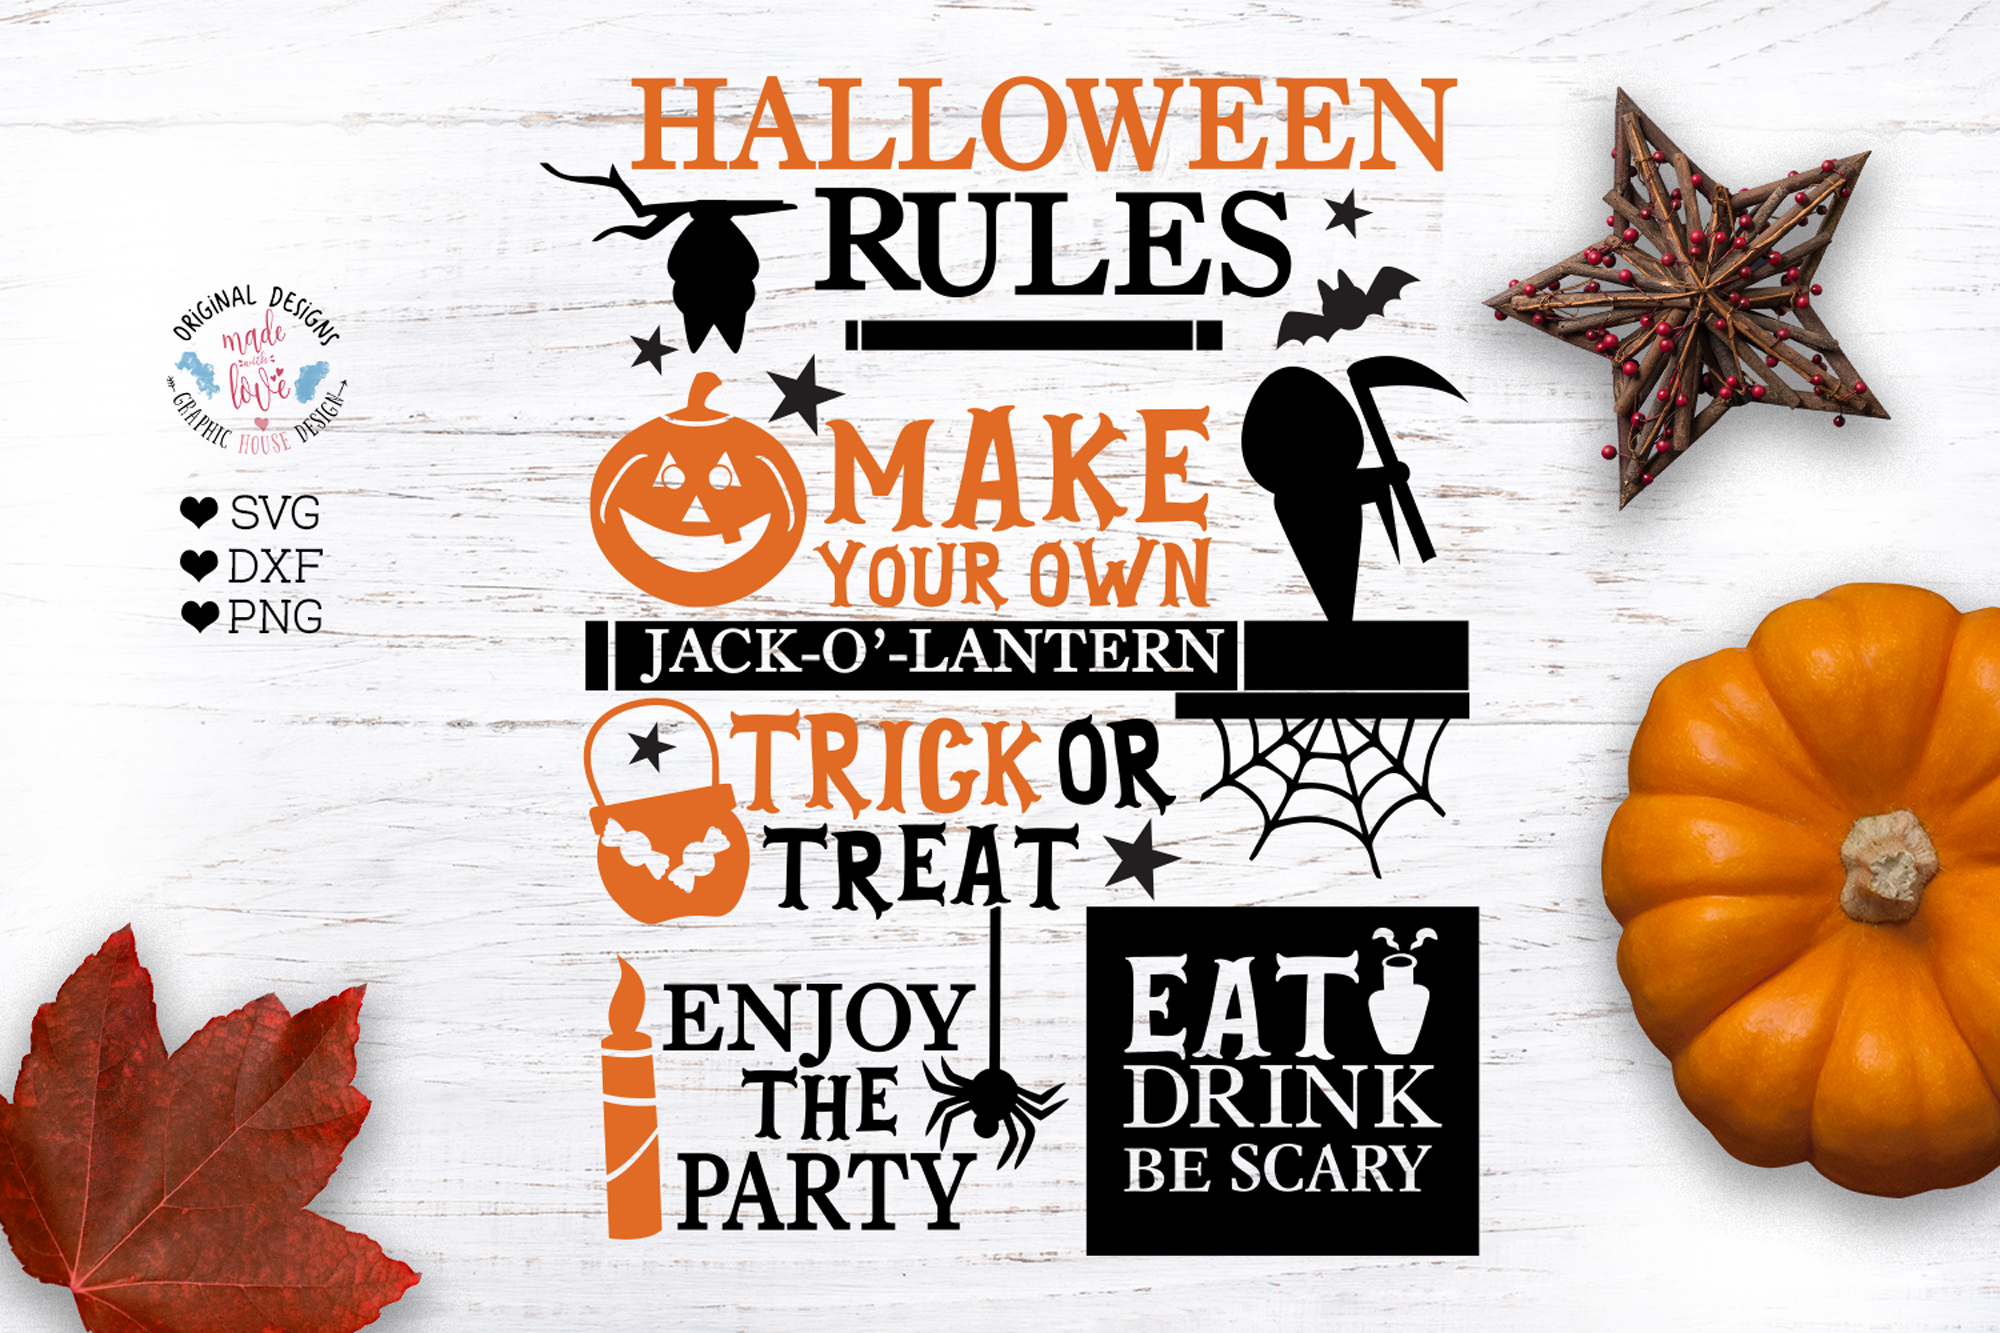 Halloween Rules Cut File example image 2